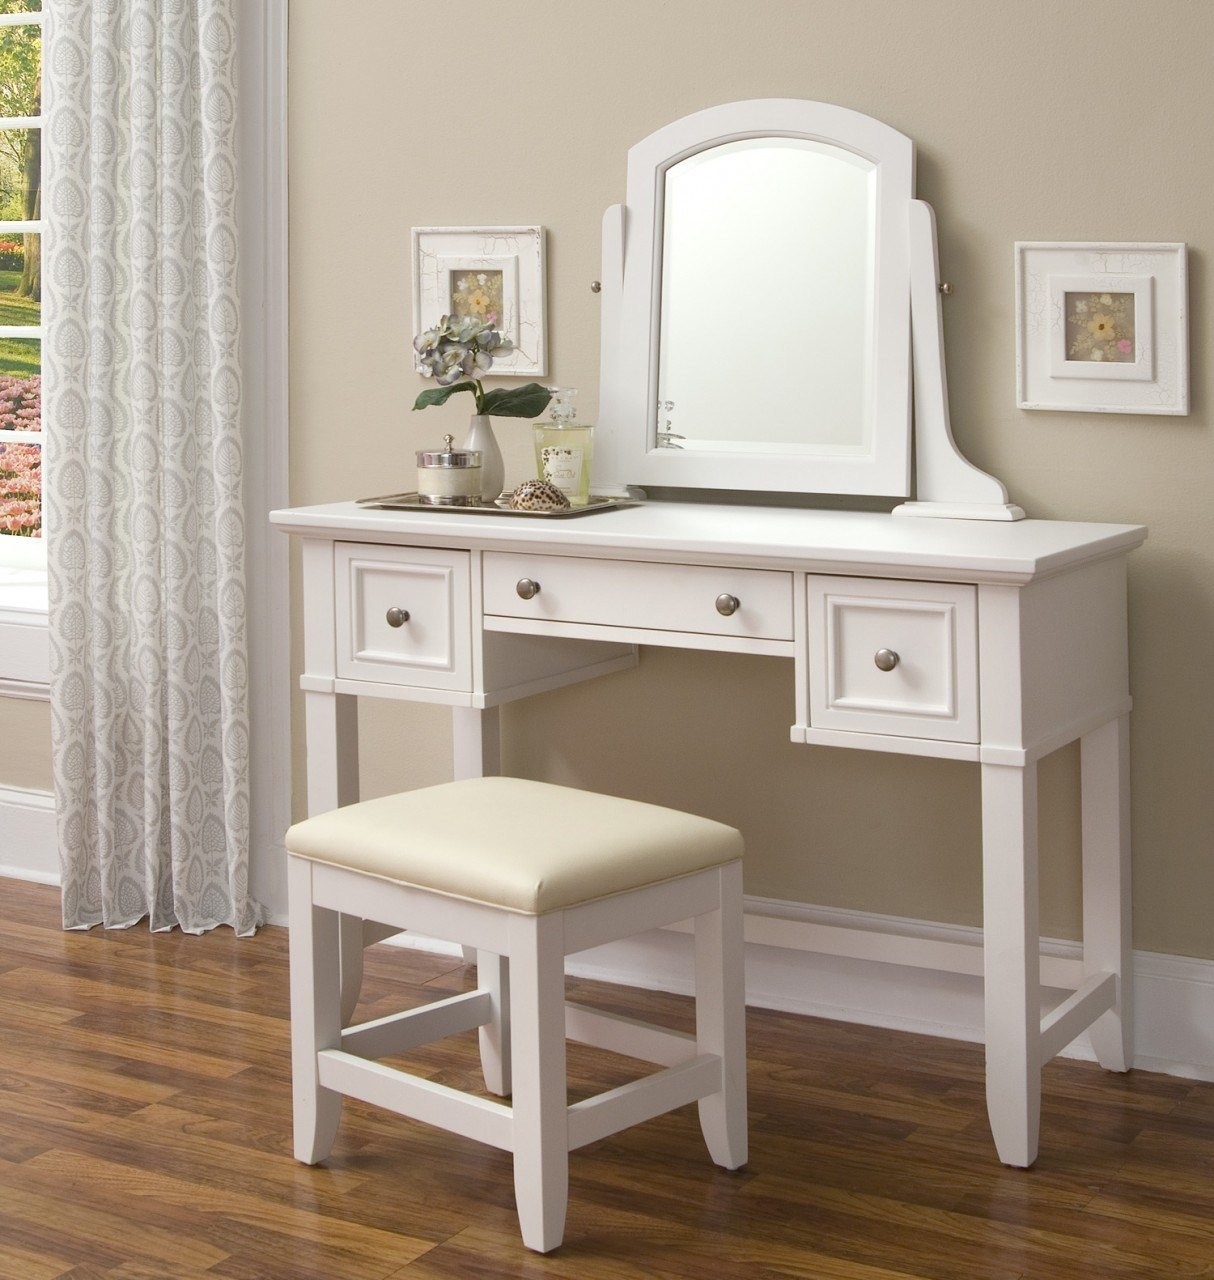 Best Homestyles Naples White Vanity Dressing Makeup Table 5530 Bedroom Furniture Reviews With Pictures